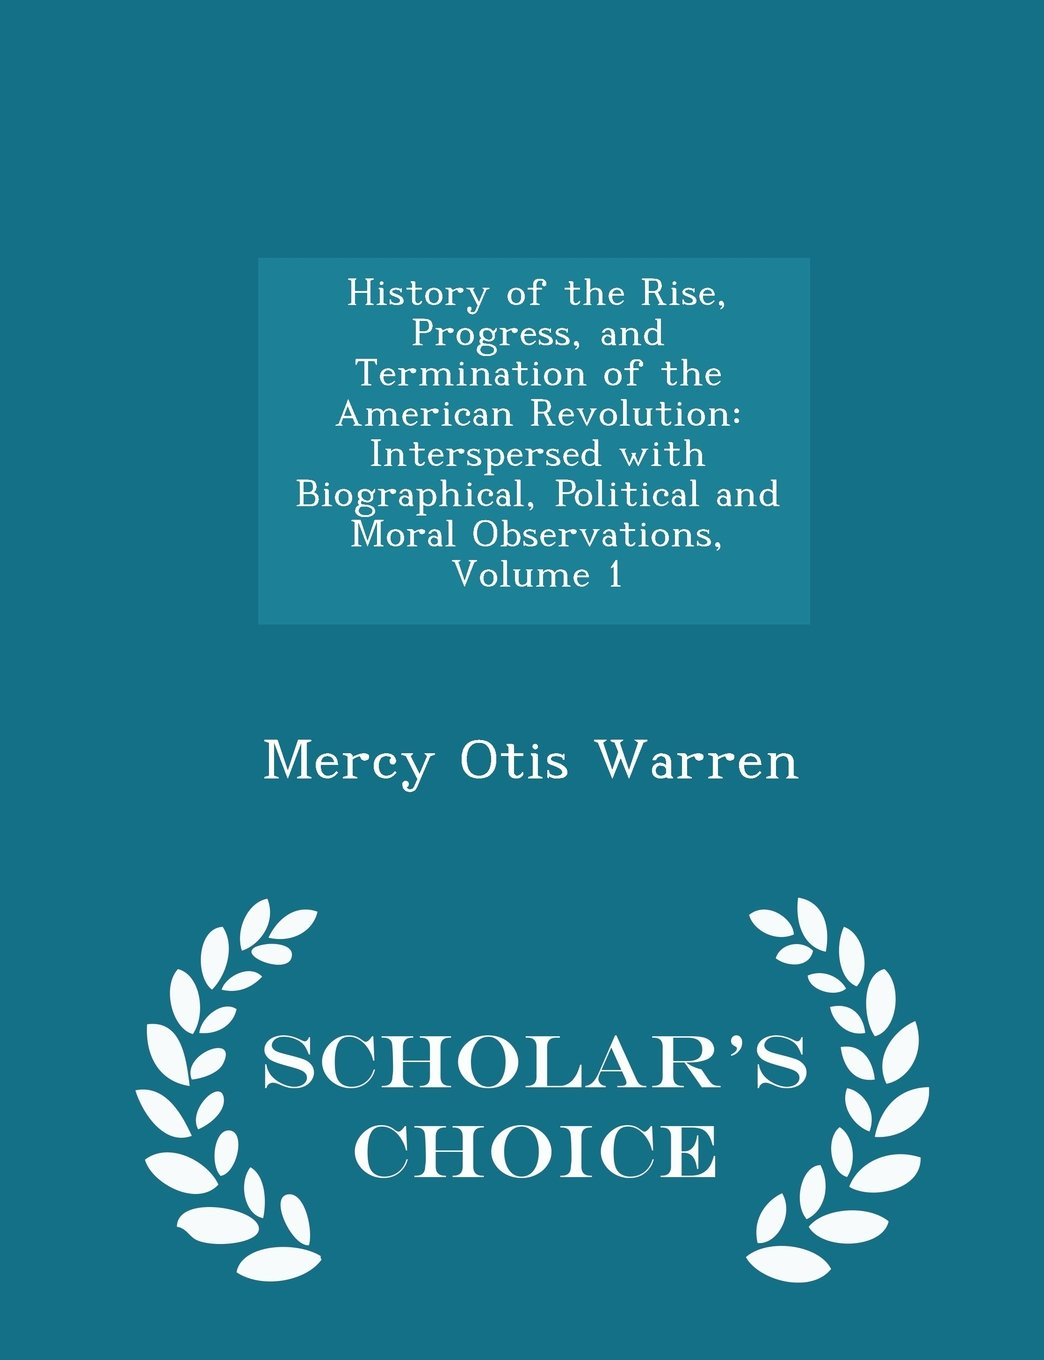 Read Online History of the Rise, Progress, and Termination of the American Revolution: Interspersed with Biographical, Political and Moral Observations, Volume 1 - Scholar's Choice Edition pdf epub